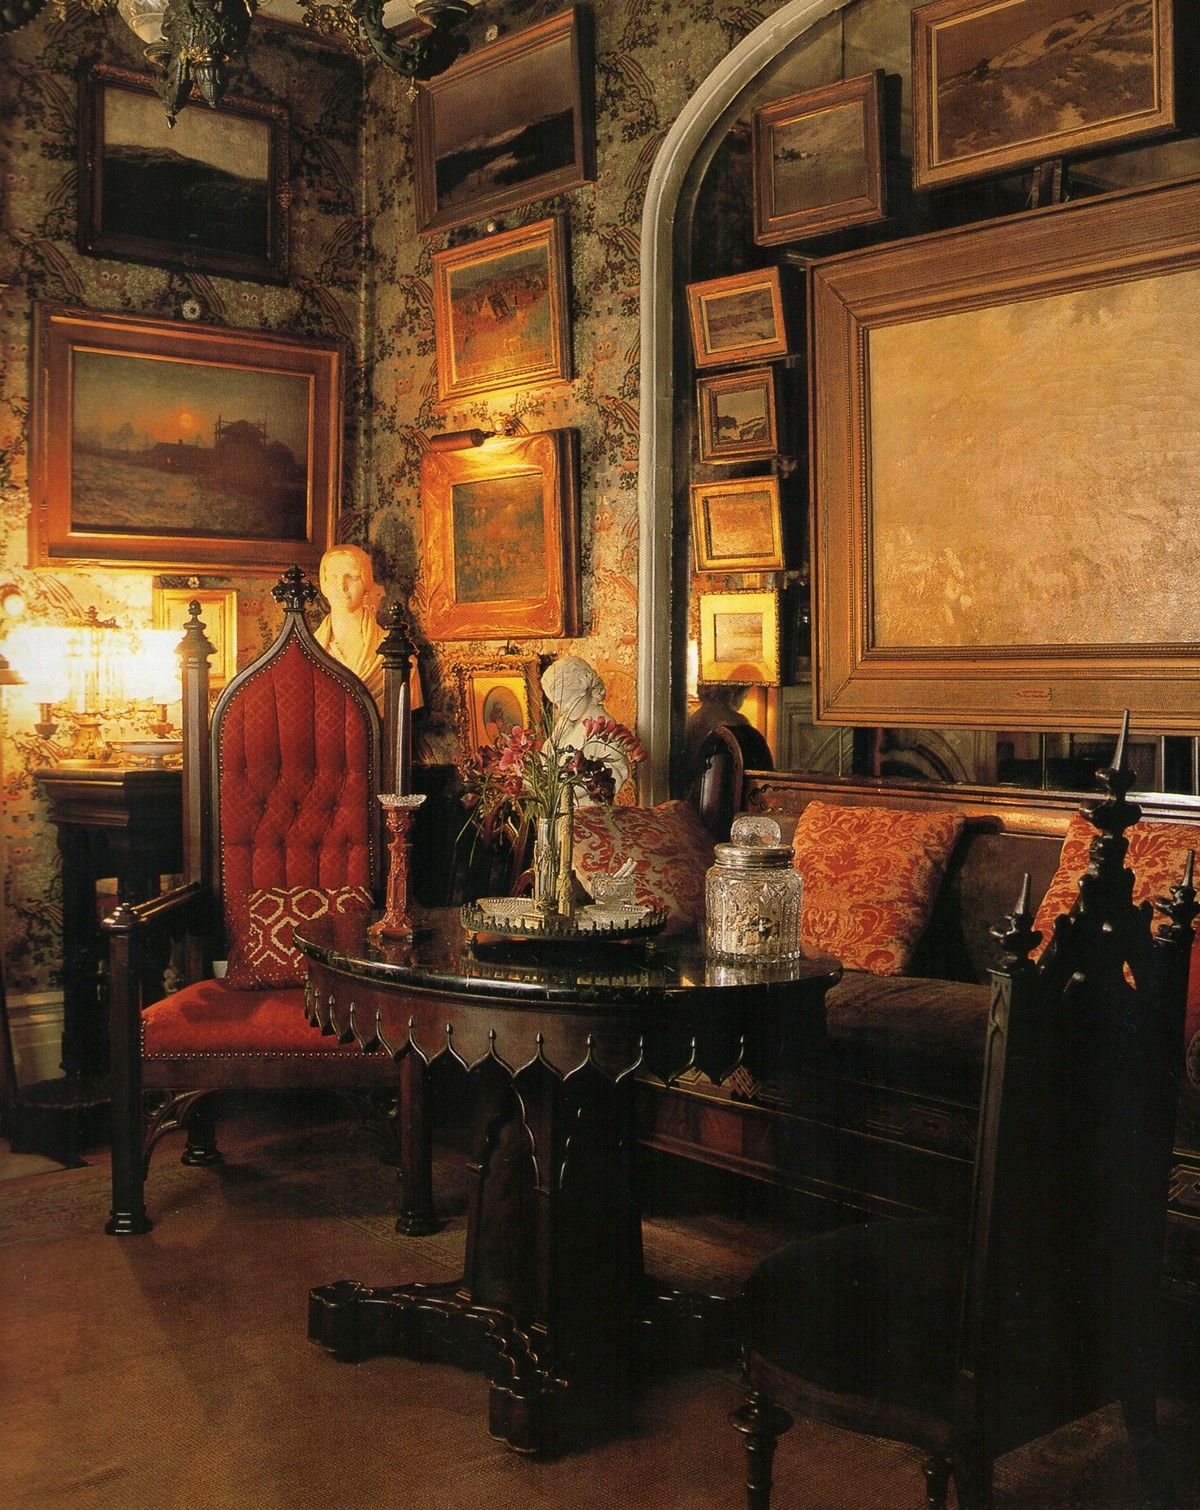 Gothic Revival Interior a gorgeous gothic revival parlor decorated with fierce chairs